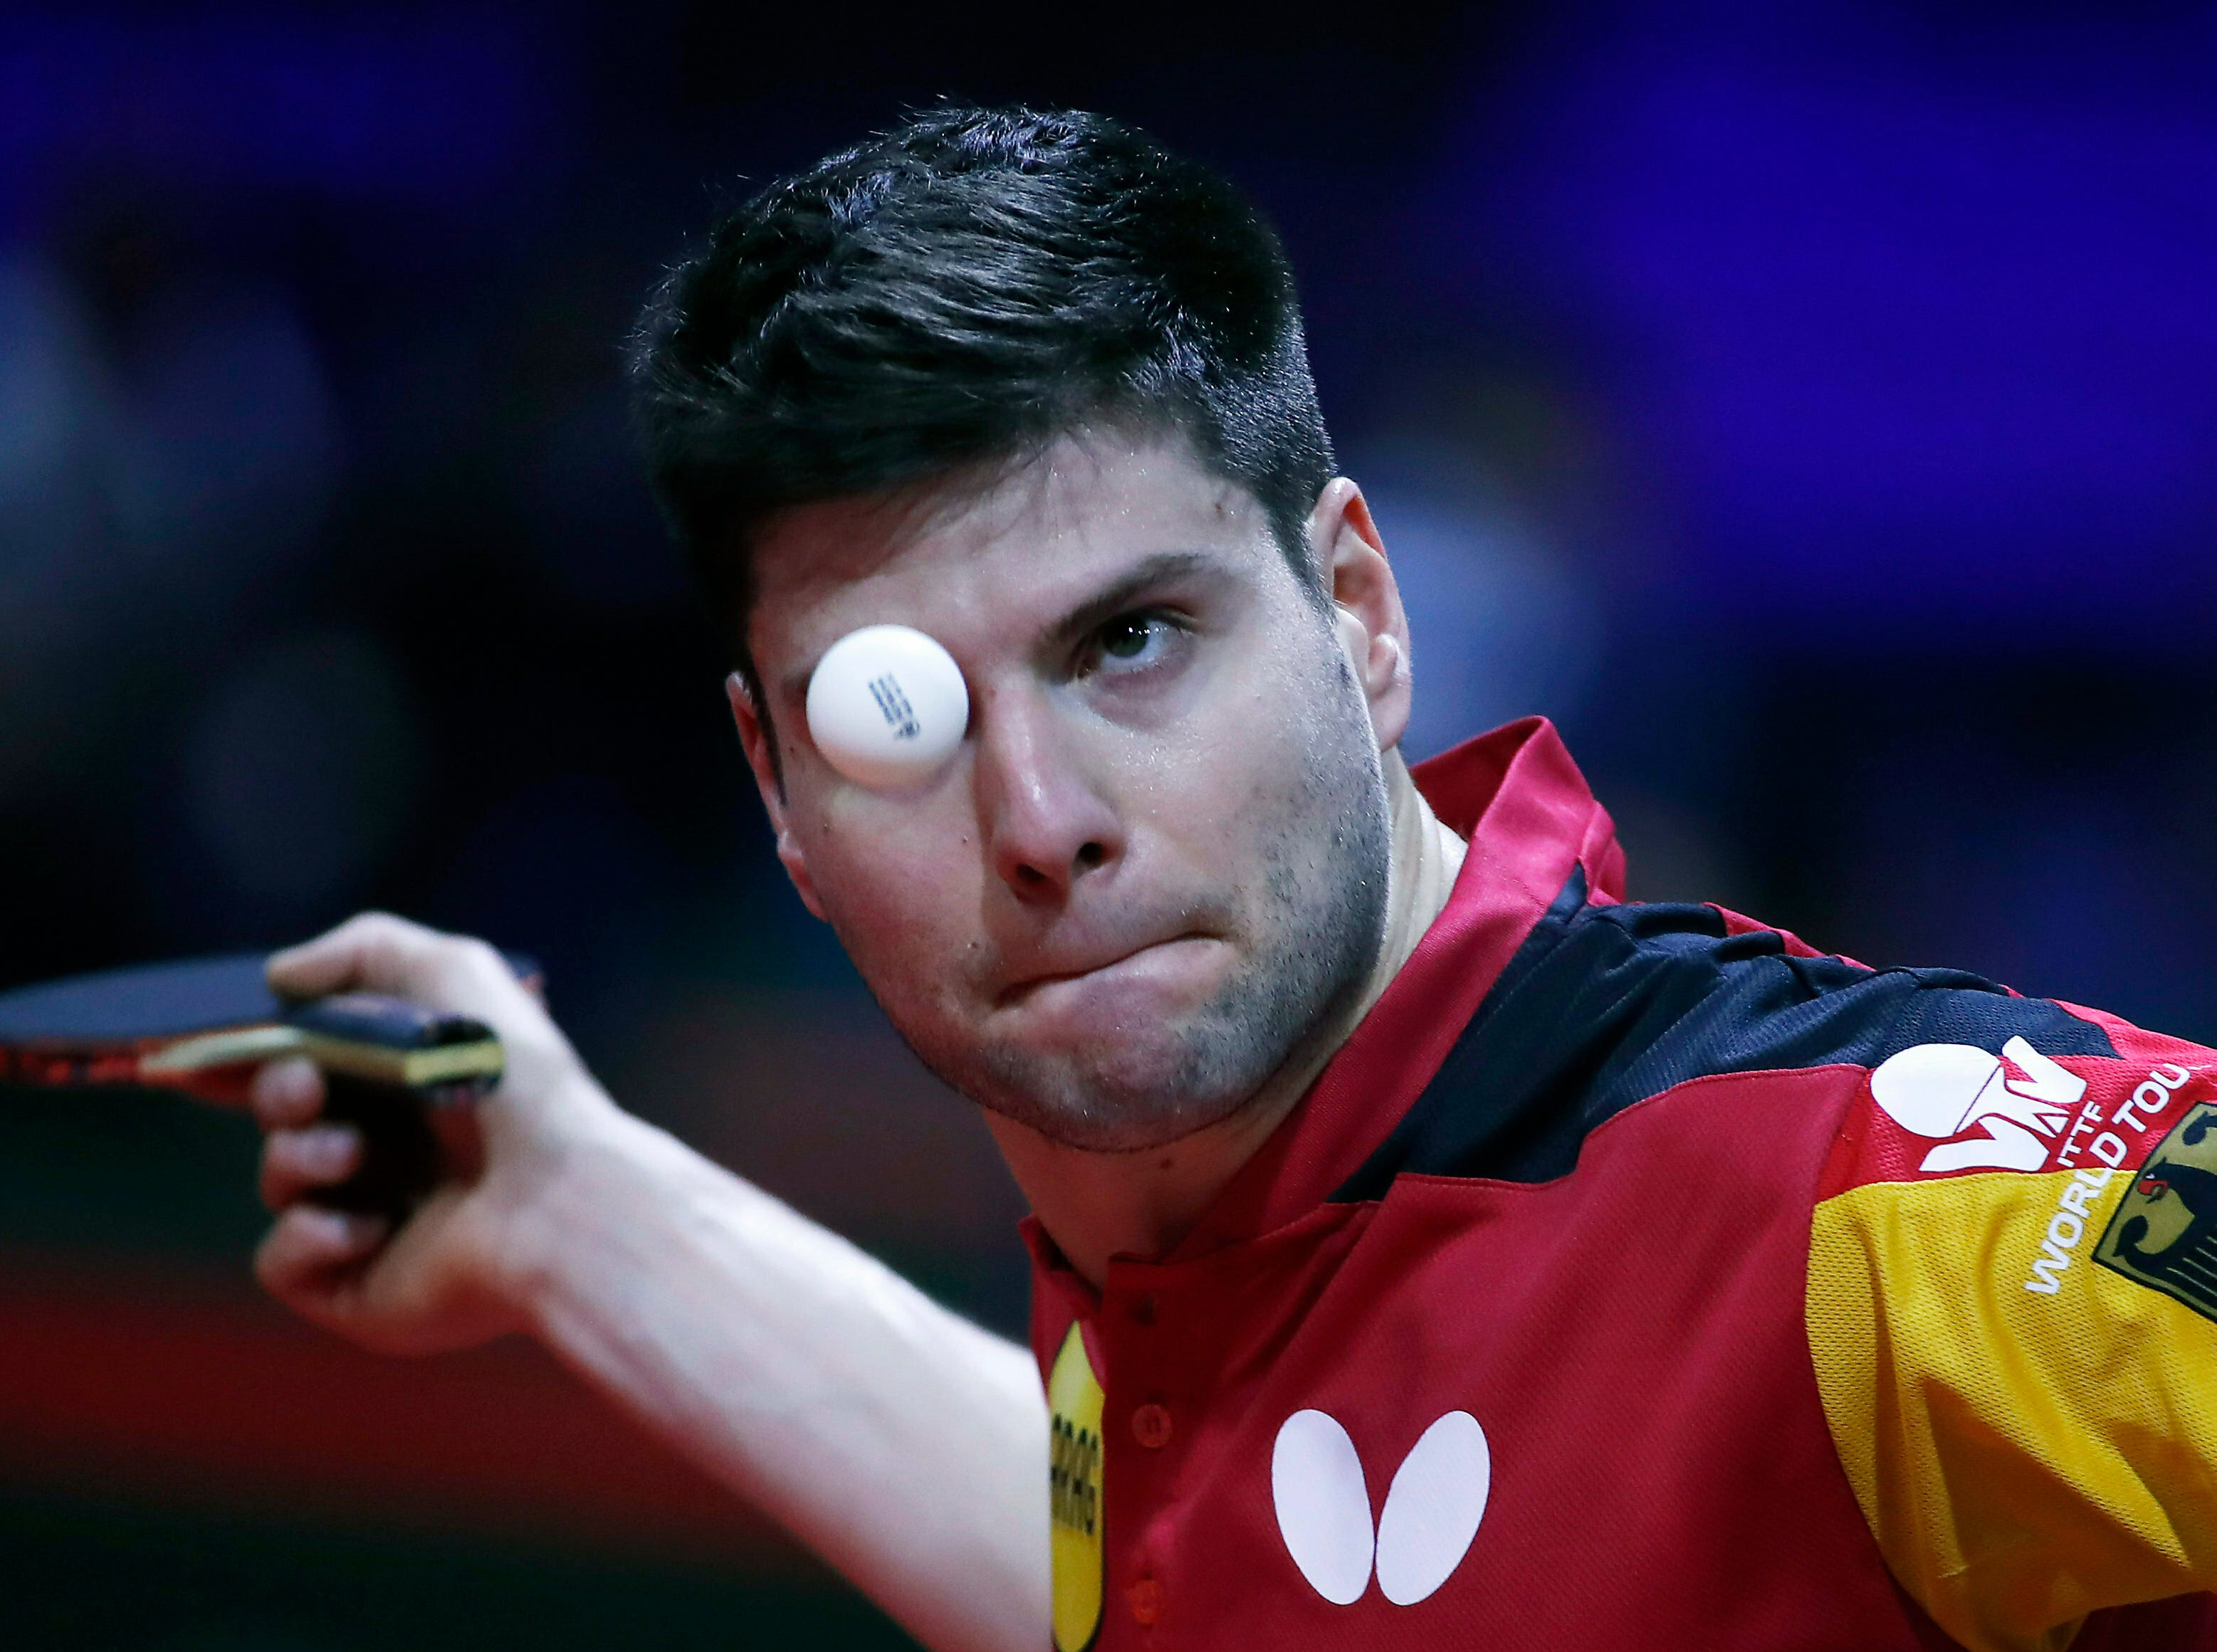 Dimitrij Ovtcharov of Germany plays against Michael Tauber of Israel during their men's single qualifying match of the World Table Tennis Championships in Budapest, Hungary, Tuesday April 23, 2019.